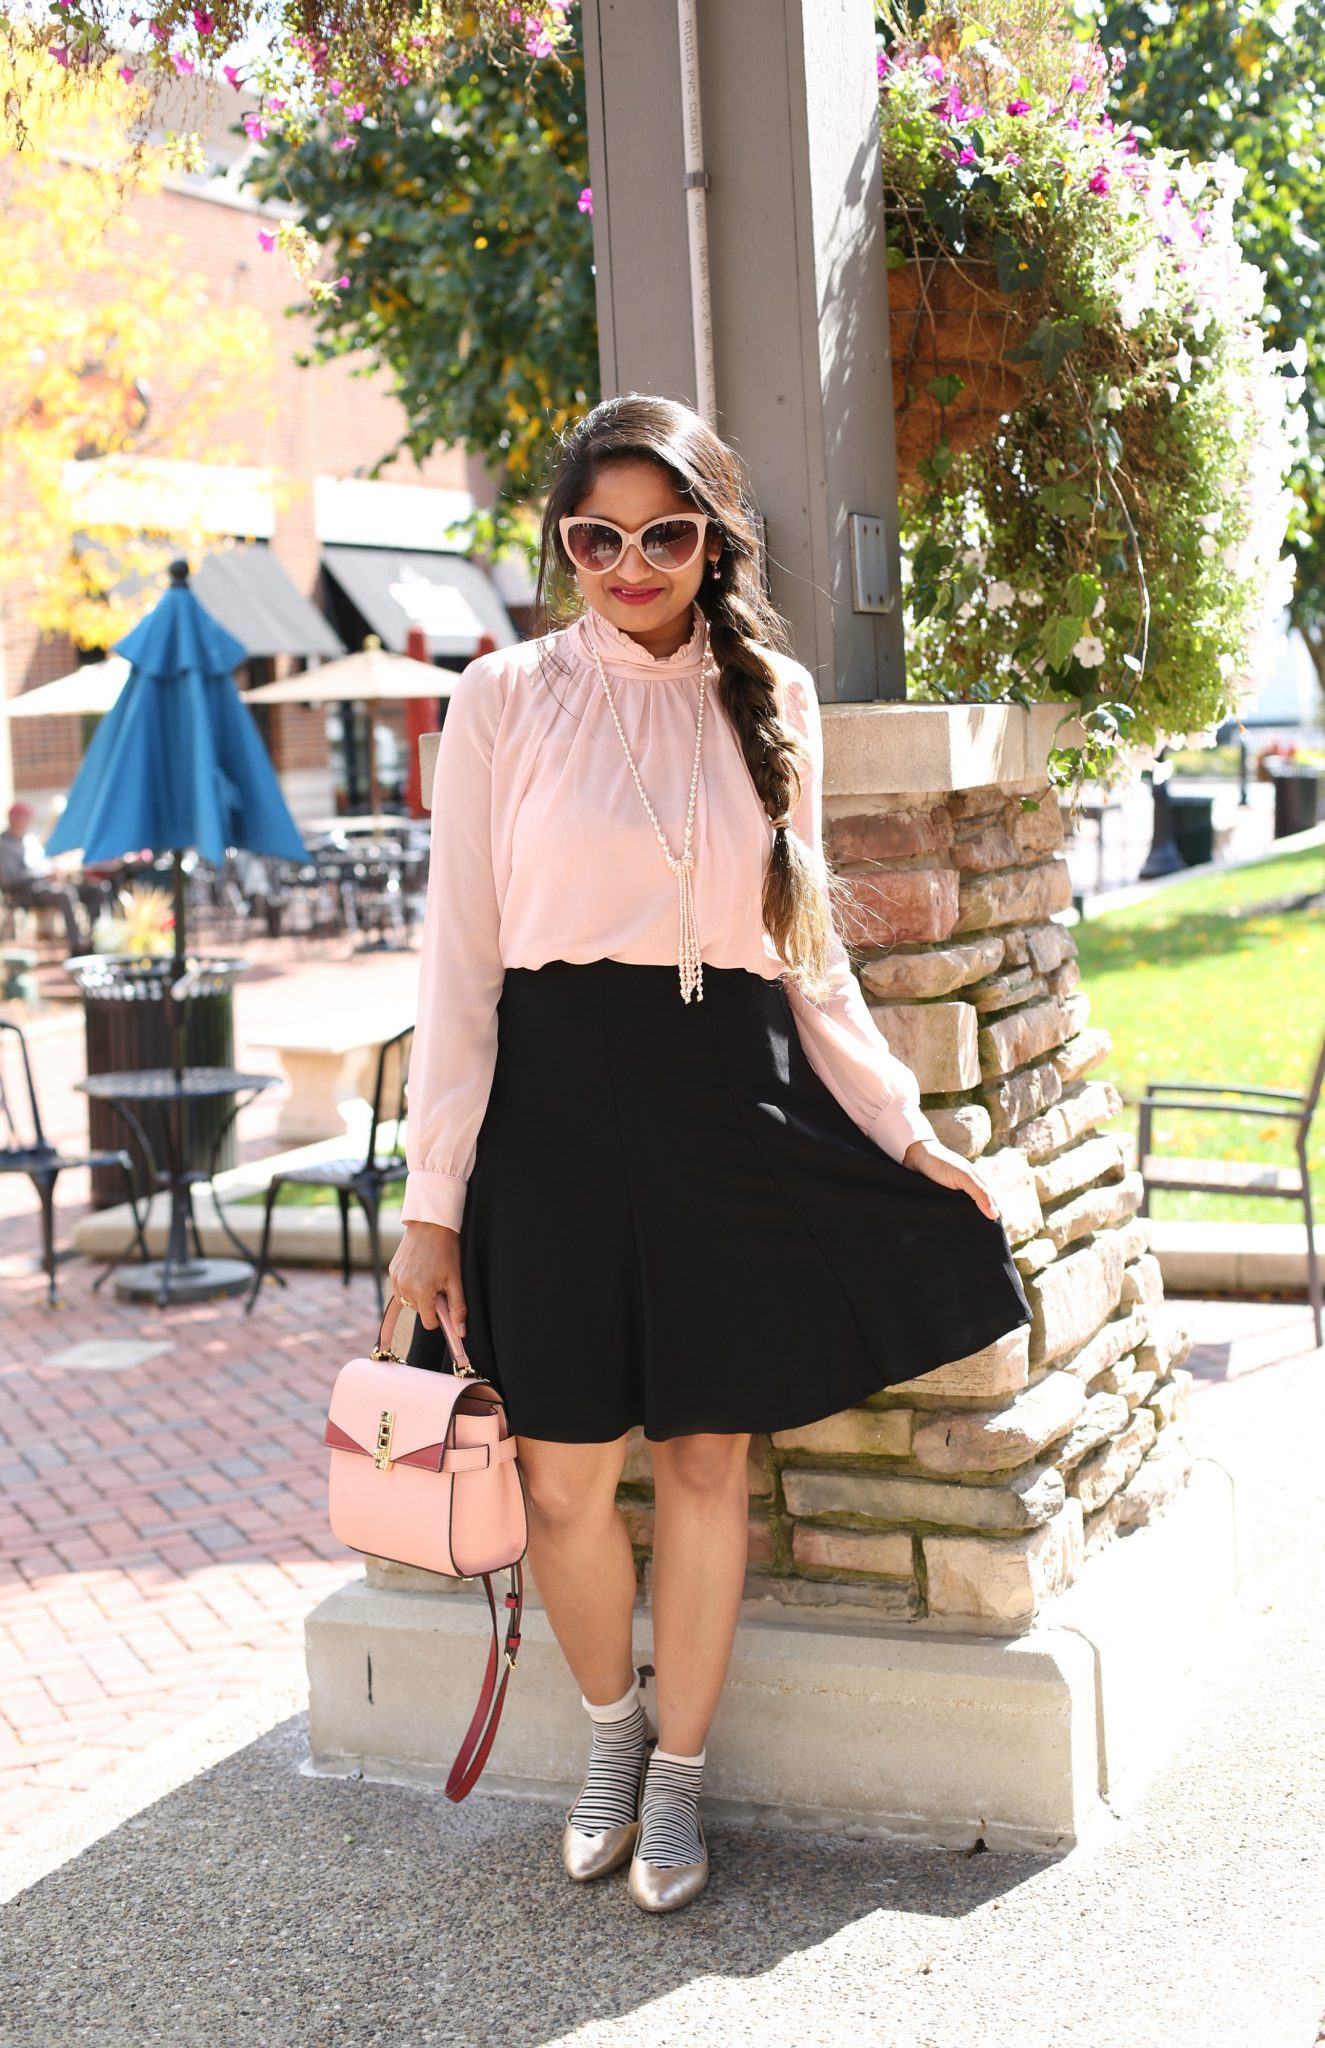 wearing Cece A-line skirt - Nordstrom Anniversary Sale top picks featured by popular Ohio modest fashion blogger, Dreaming Loud